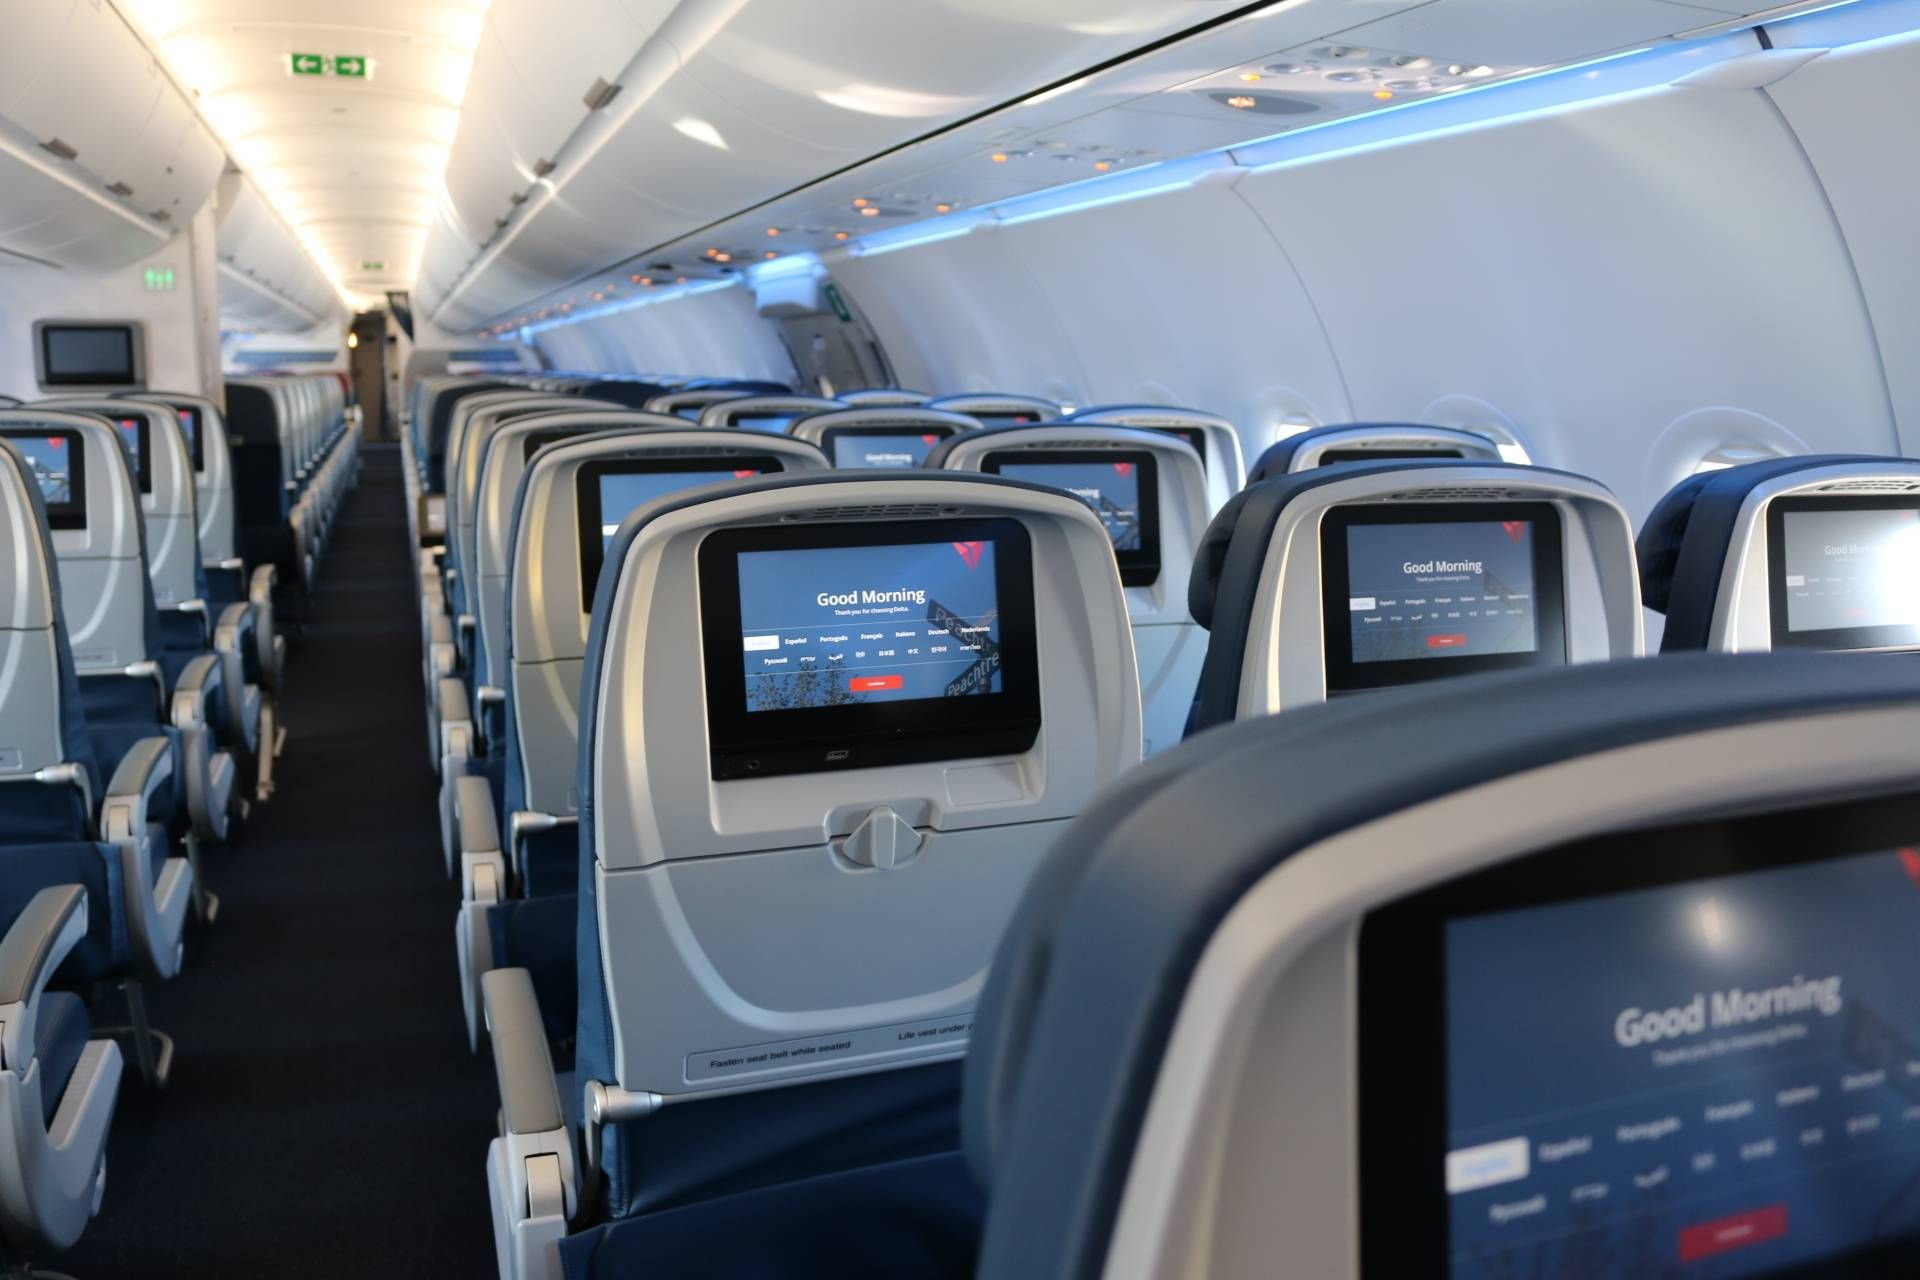 Delta A321 In flight audio and video system